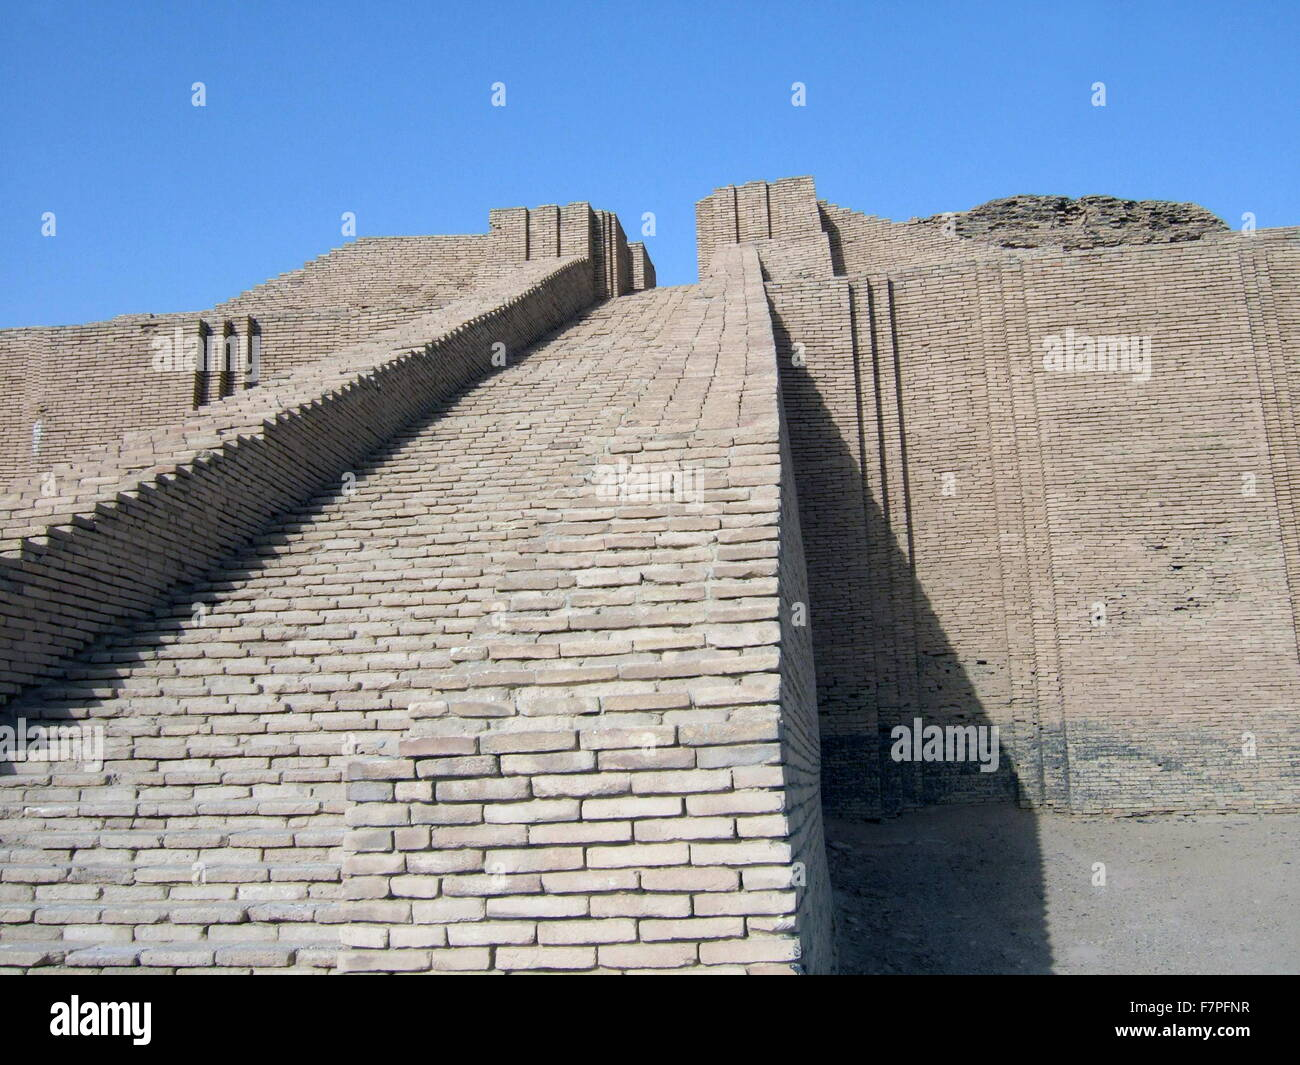 Reconstructed Babylonian structure. Dated 2015 - Stock Image